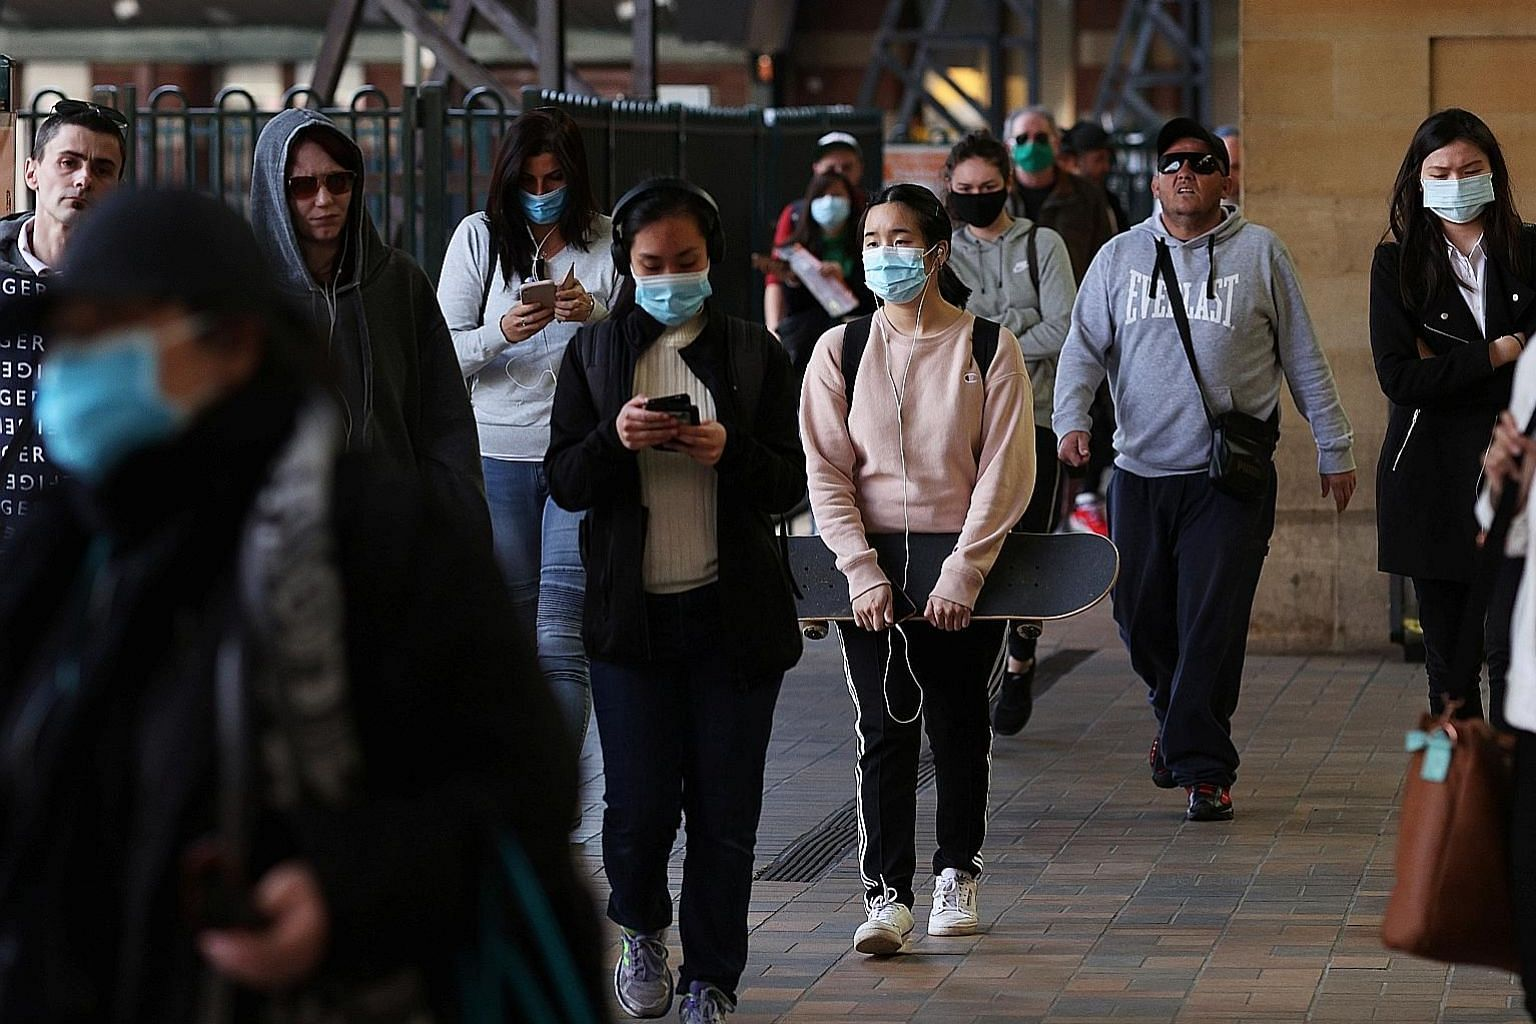 Commuters at Central Station in Sydney last week. The World Health Organisation said that many young people are unaware that they have been infected and are spreading the disease. One reason is that they may not see obvious symptoms that push them to